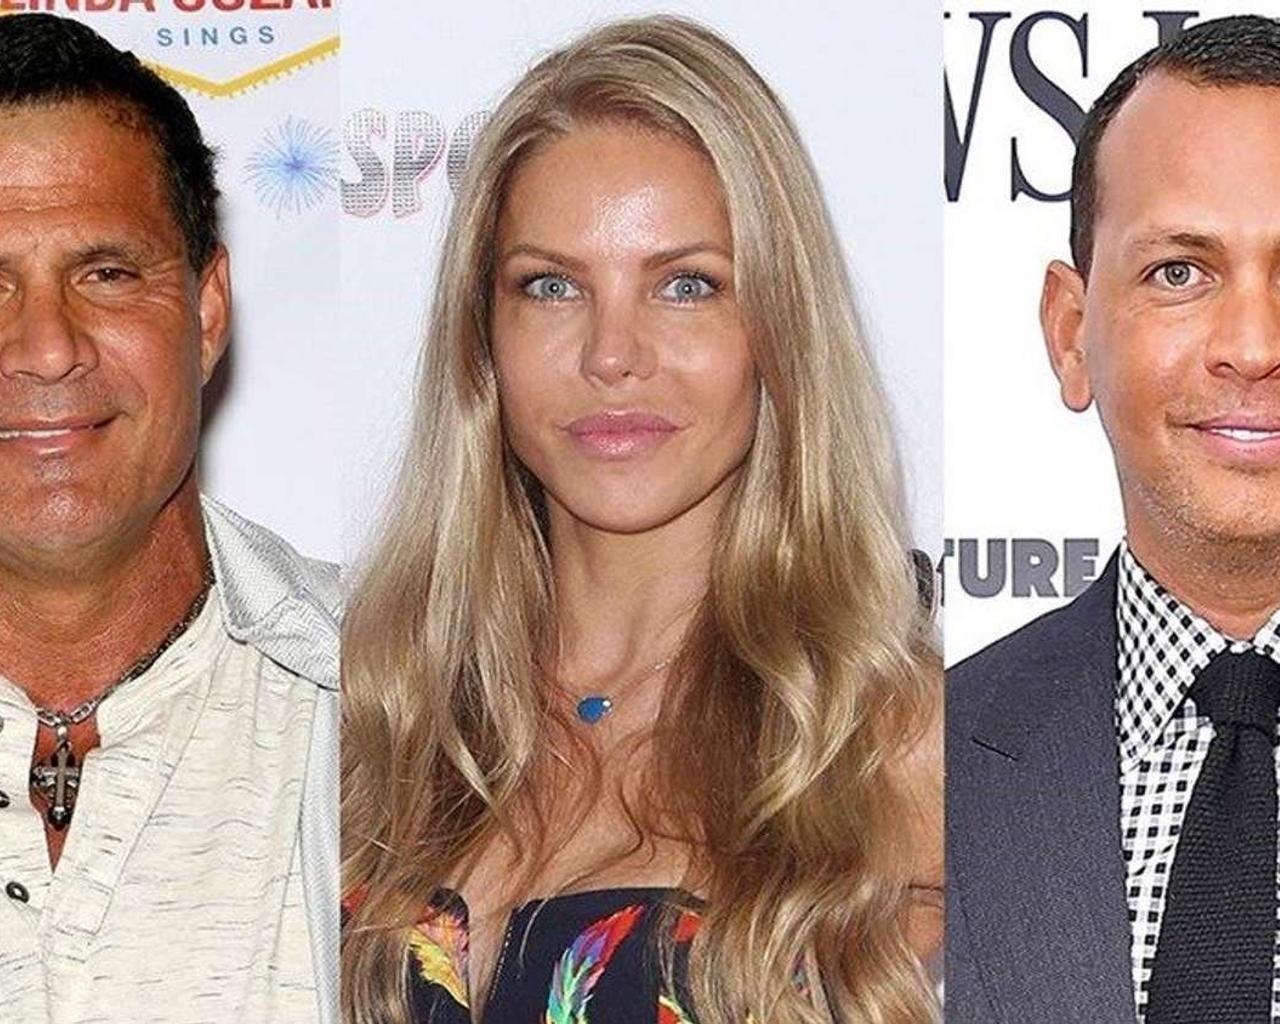 Did Alex Rodriguez Cheat on Jennifer Lopez? Jose Canseco Seems to Think so — Does He Have Any Proof?